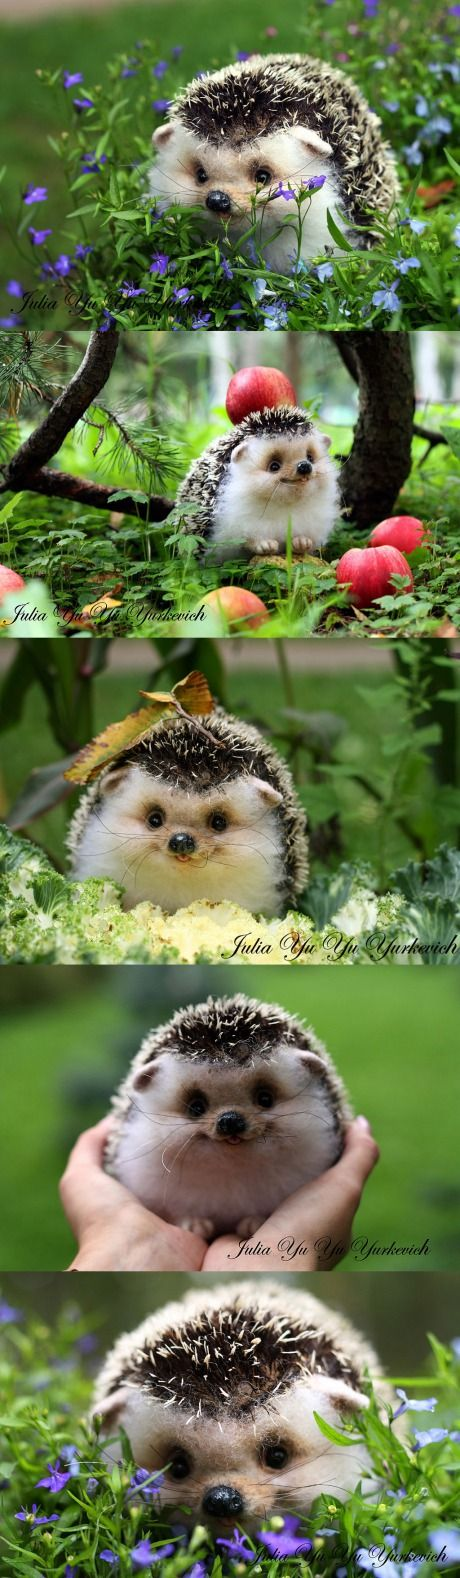 Happy hedgehog how sweet!